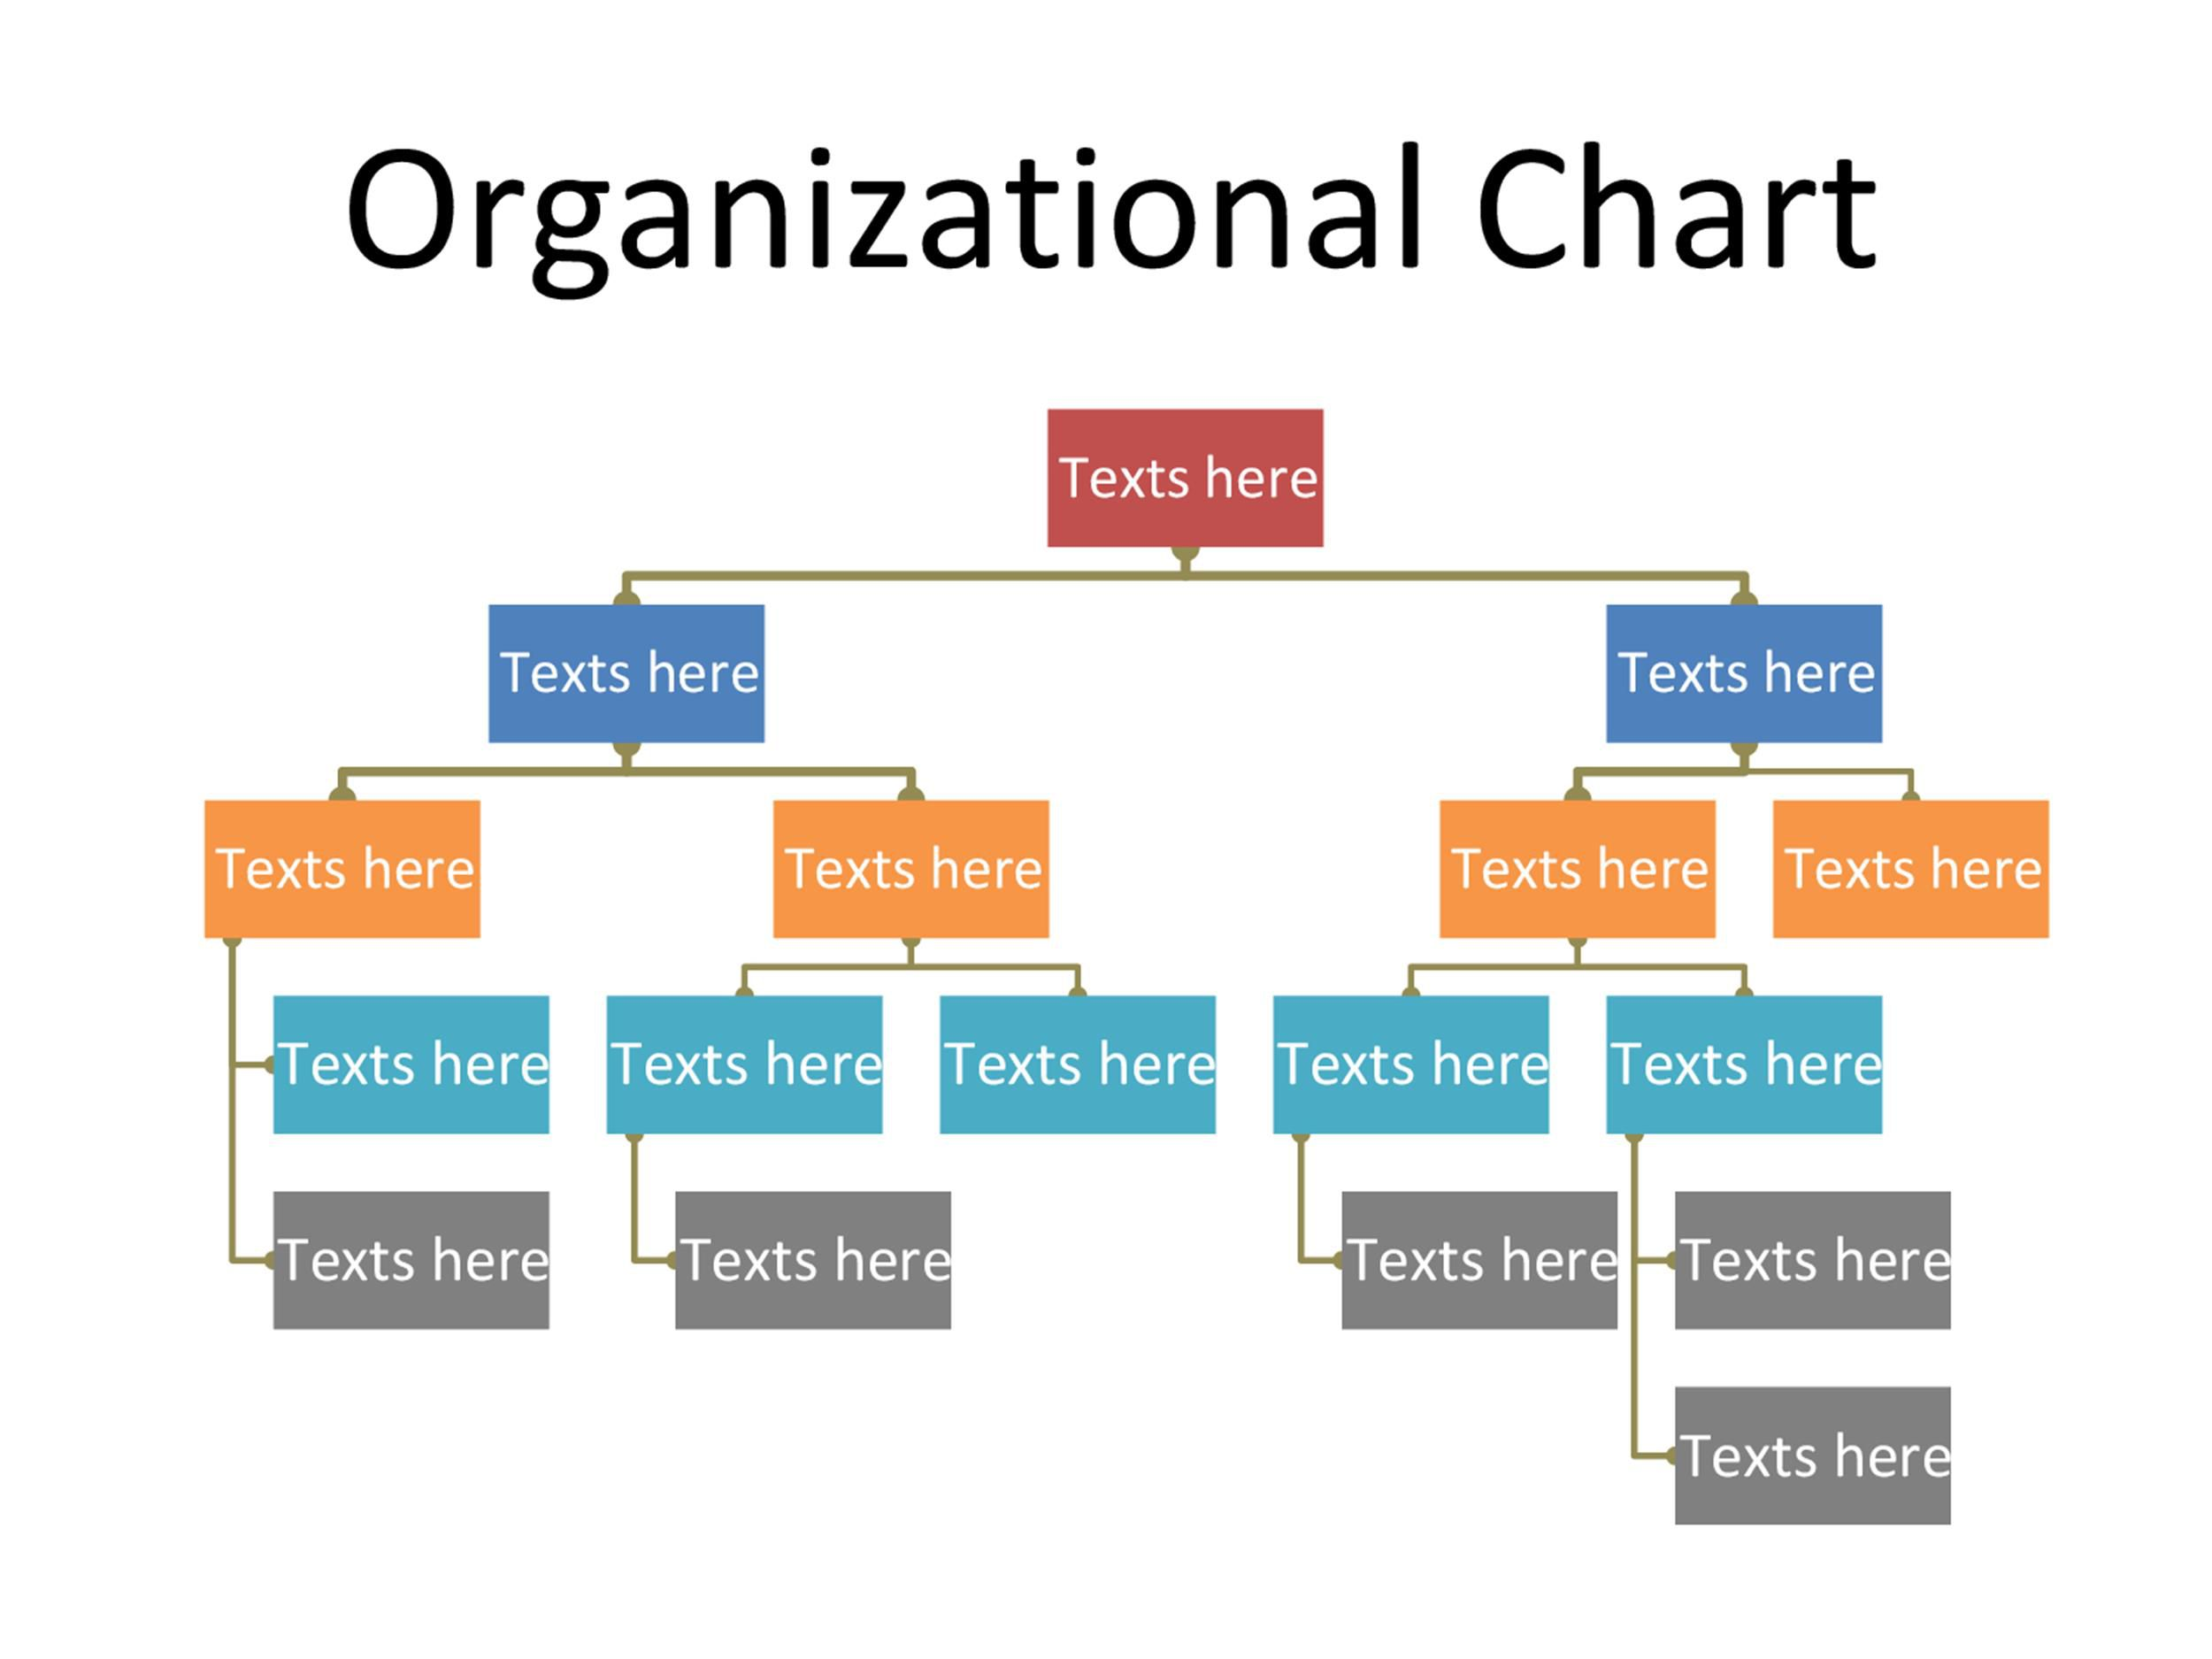 005 Simple Organizational Chart Template Word Design  2010 2007 Free DownloadFull